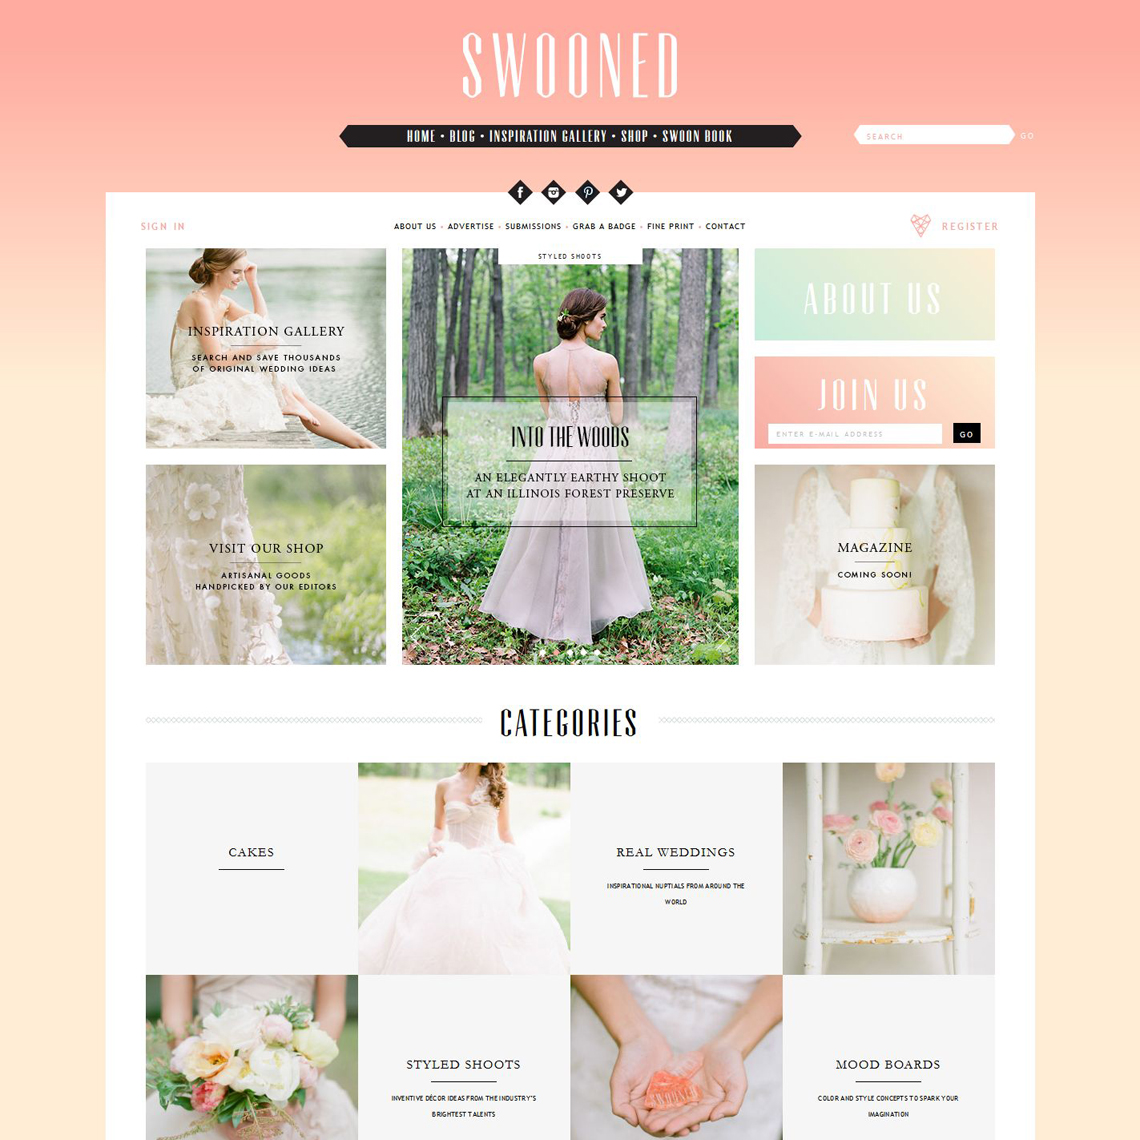 bloved-wedding-blog-top-10-wedding-blogs-2016-swooned-magazine